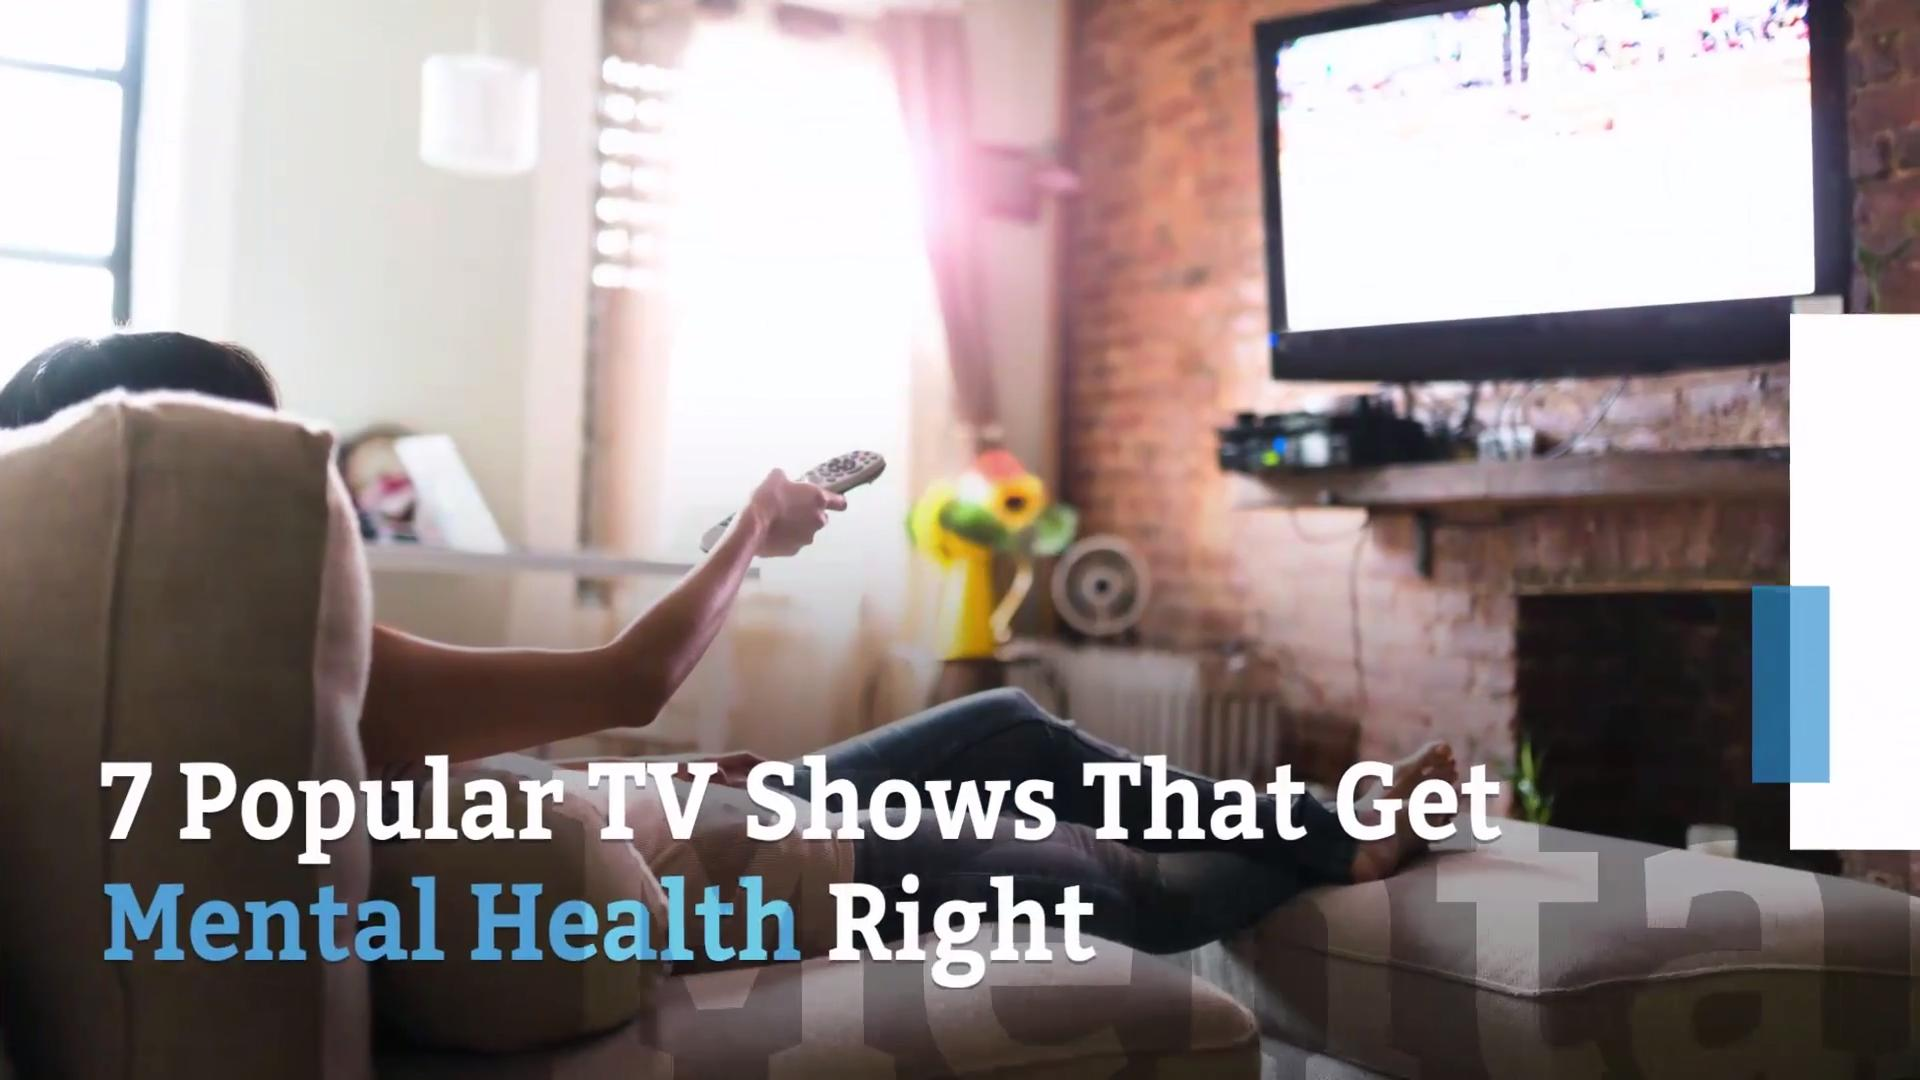 7 Popular TV Shows That Get Mental Health Right